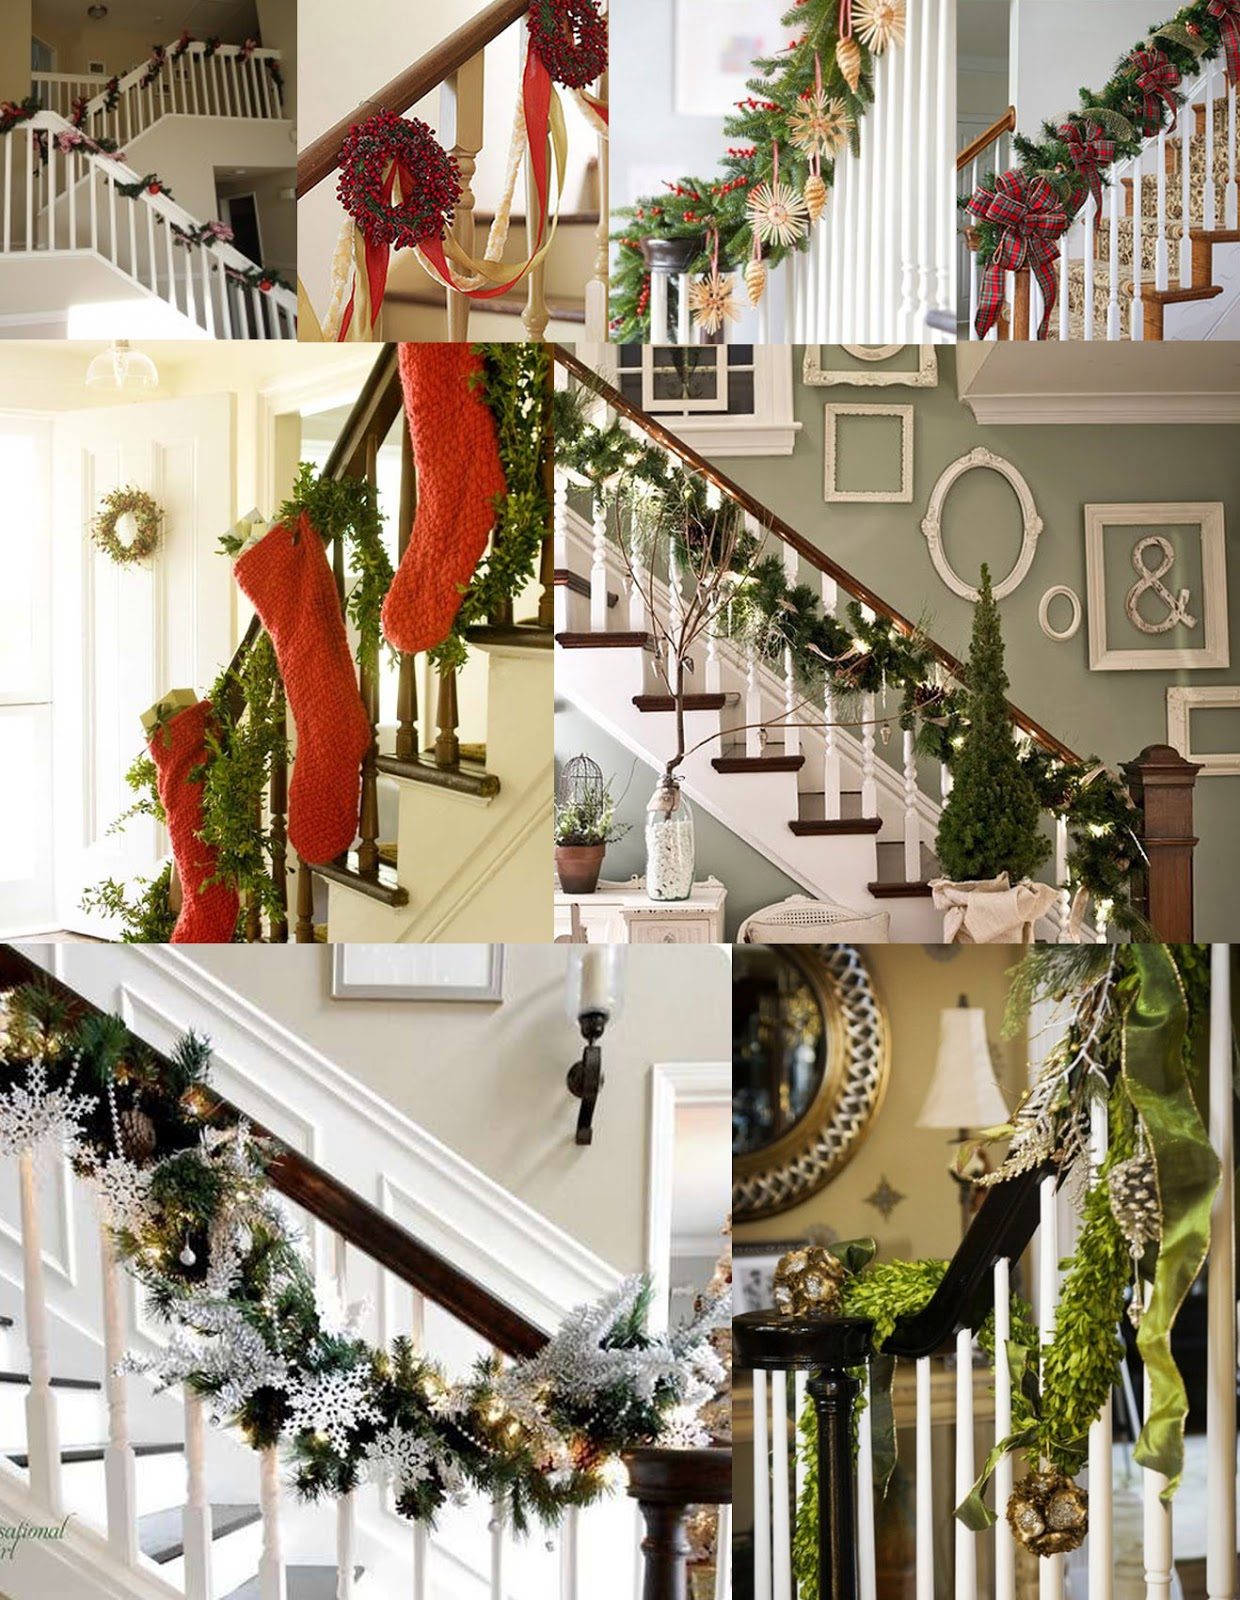 Bridoor s l escaleras de madera decoradas en navidad for Fotos pinterest